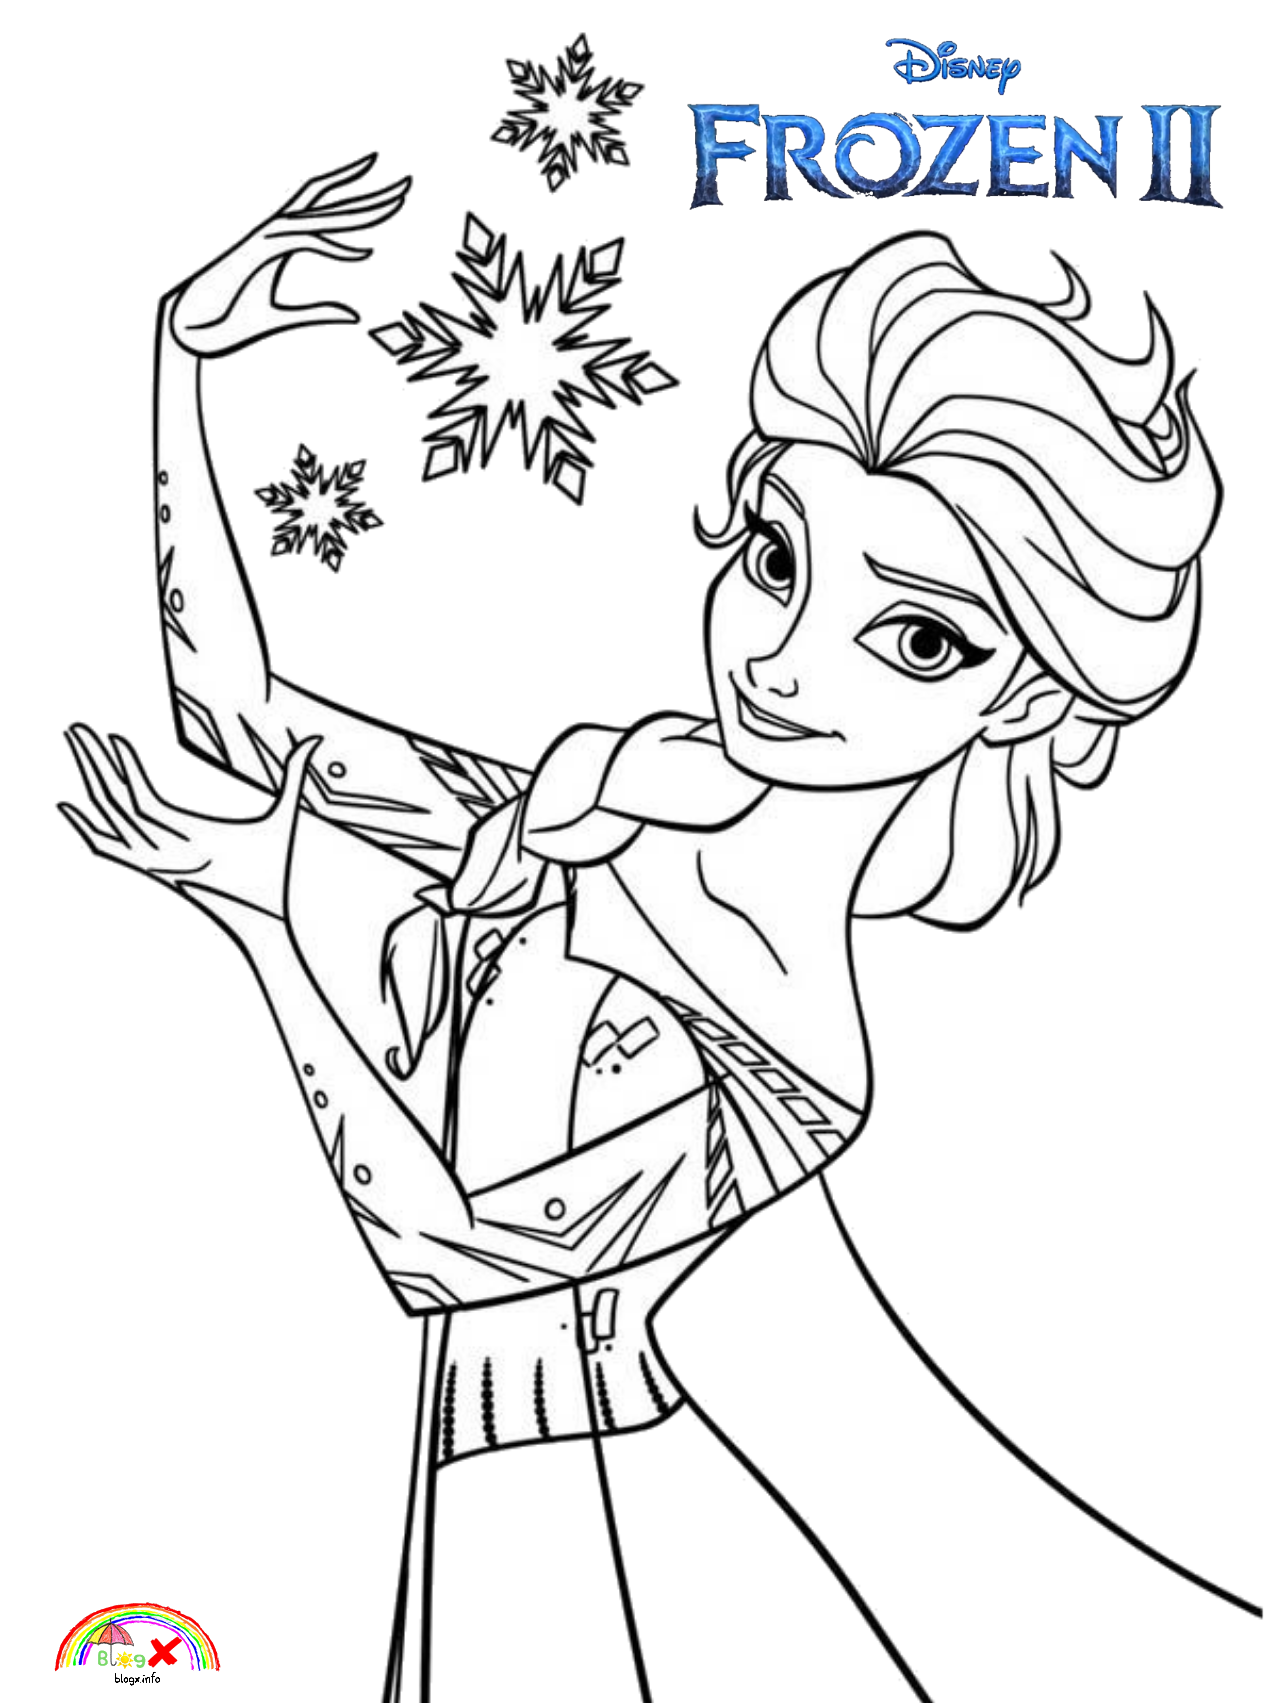 Frozen Coloring Pages Elsa Face Elsa Coloring Pages Halloween Coloring Pages Disney Coloring Pages